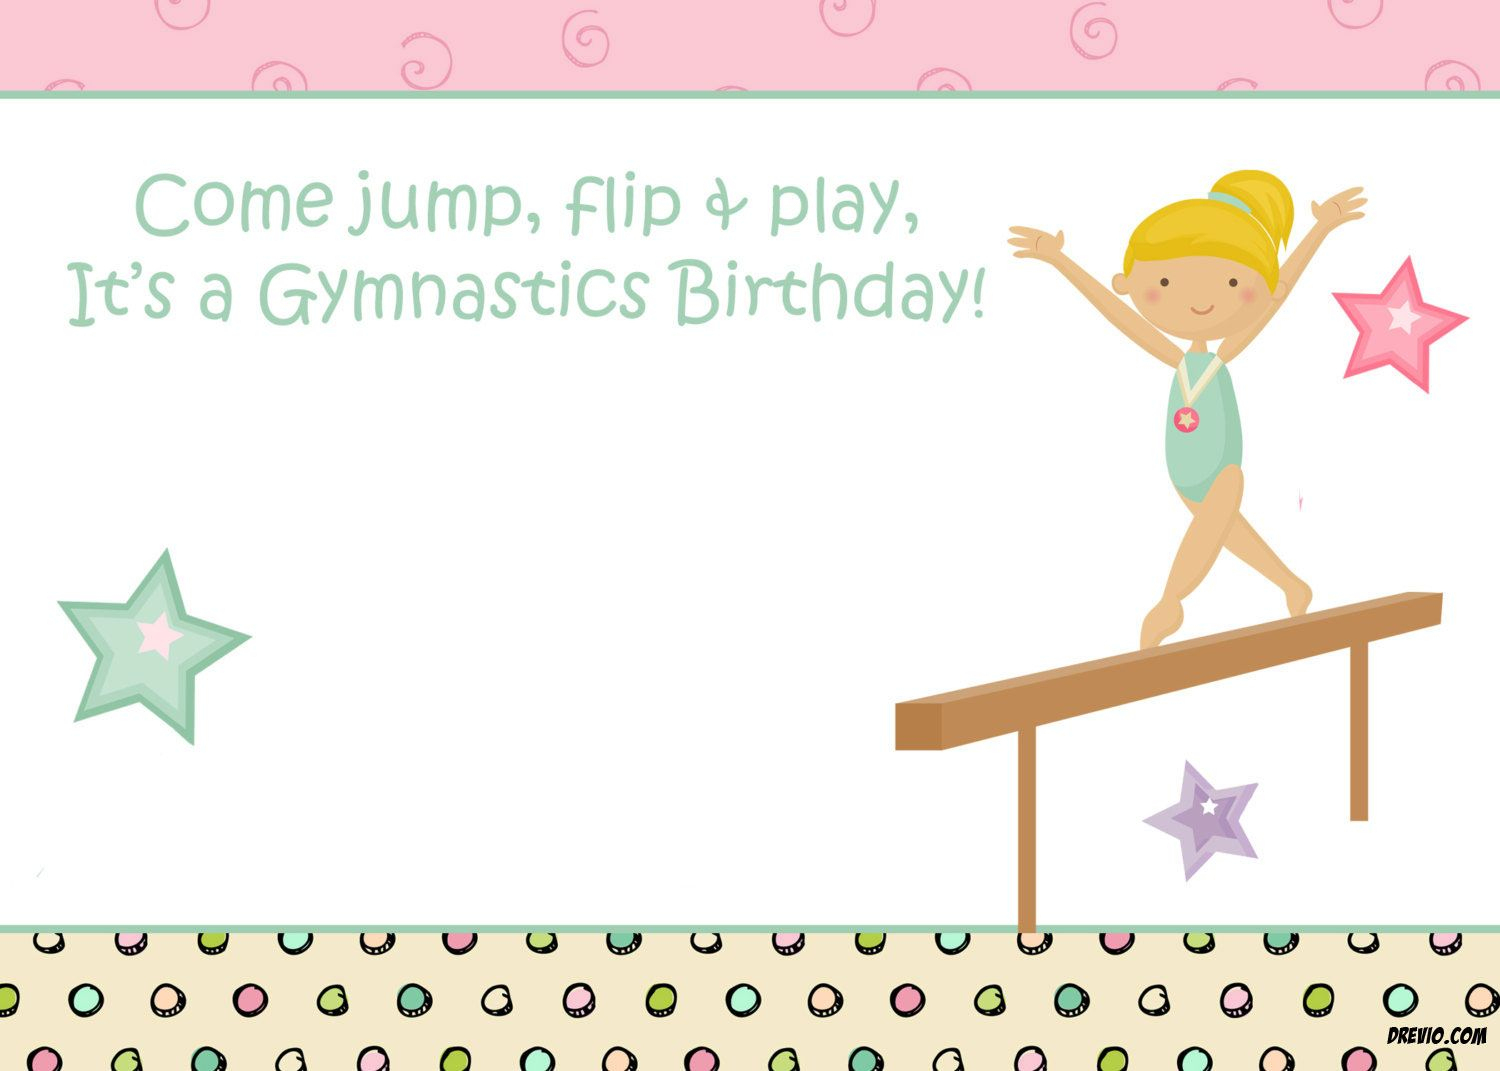 Free Printable Gymnastic Birthday Invitations - | Free Printable - Free Printable Birthday Invitations For Kids